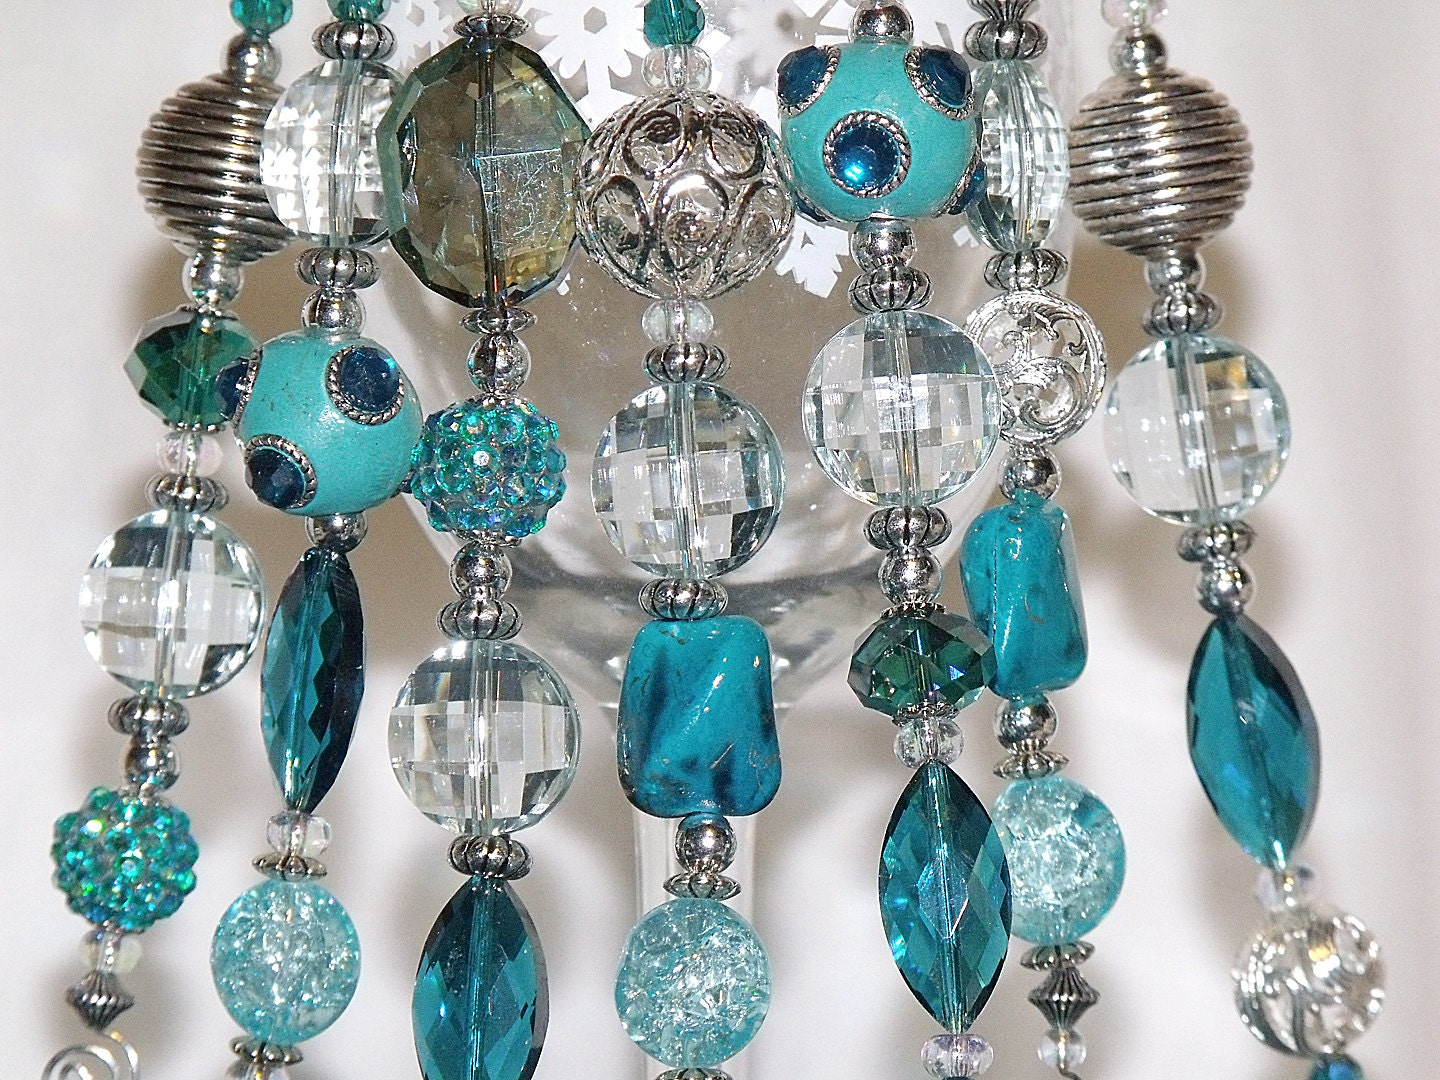 Bead Christmas Ornaments Turquoise Blue and Silver Icicles